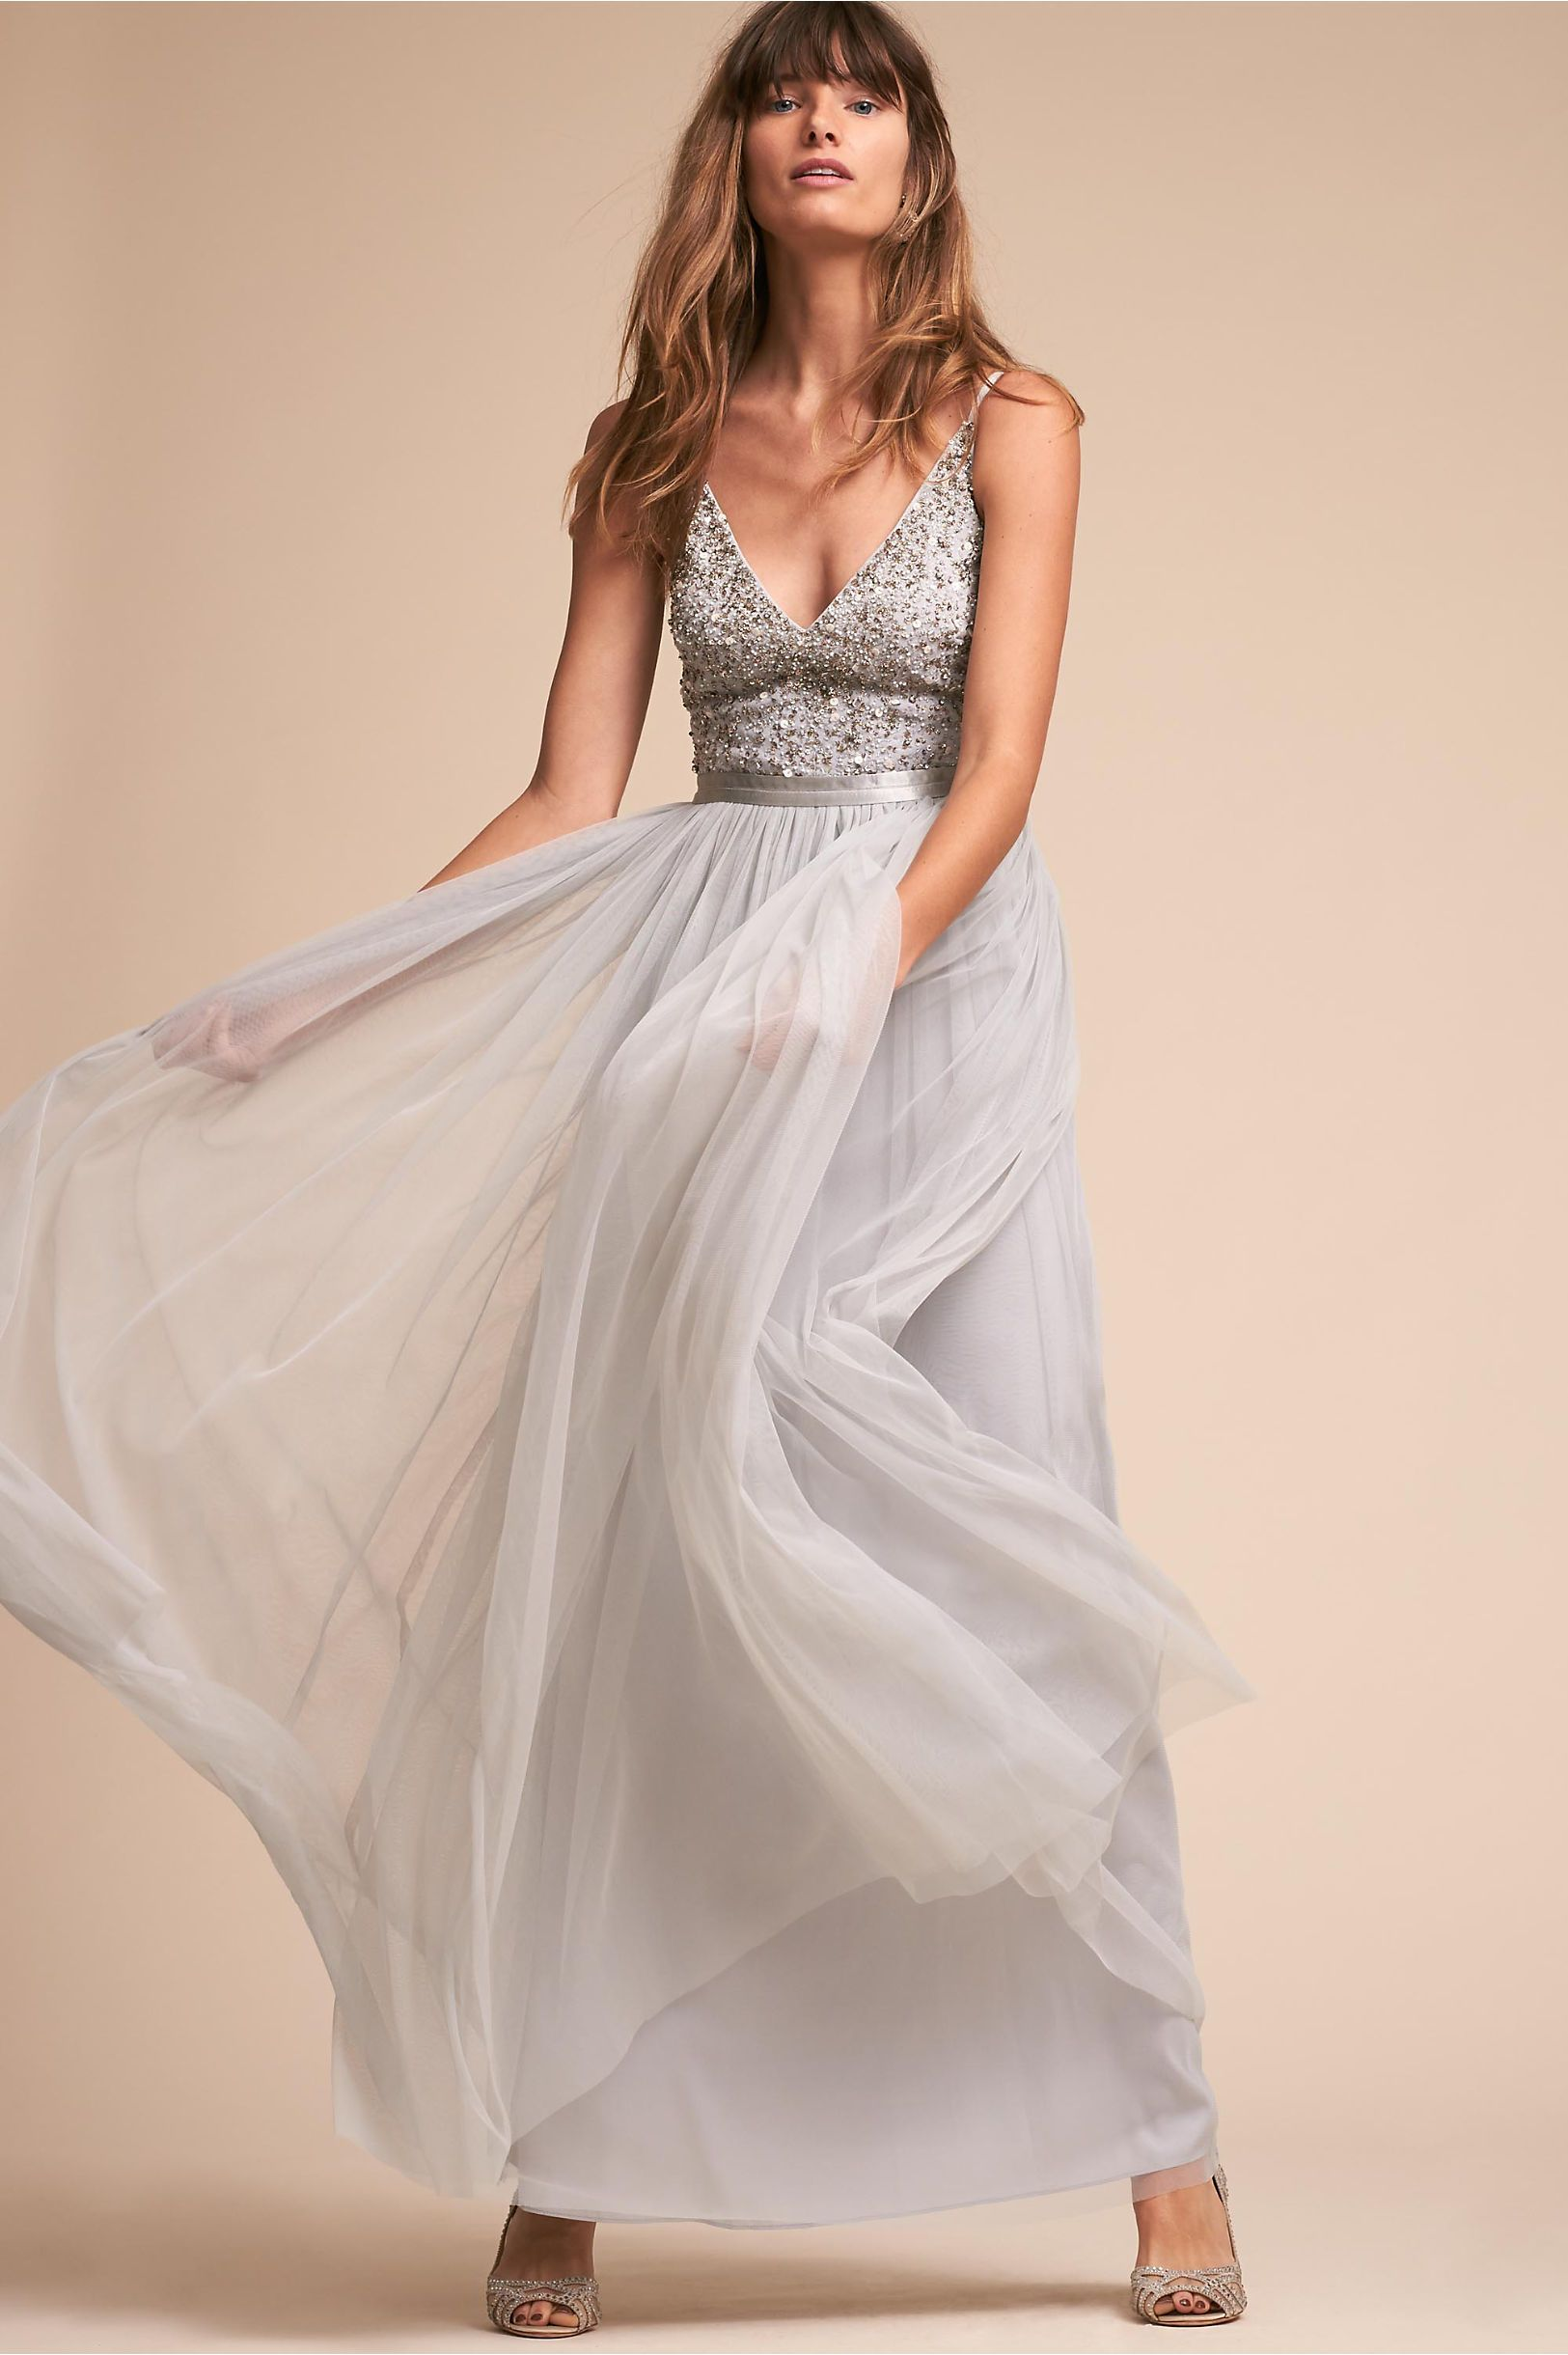 d0d7048a0ff77 BHLDN's Avery Dress in Fog | Products | Dresses, Bridesmaid dresses ...